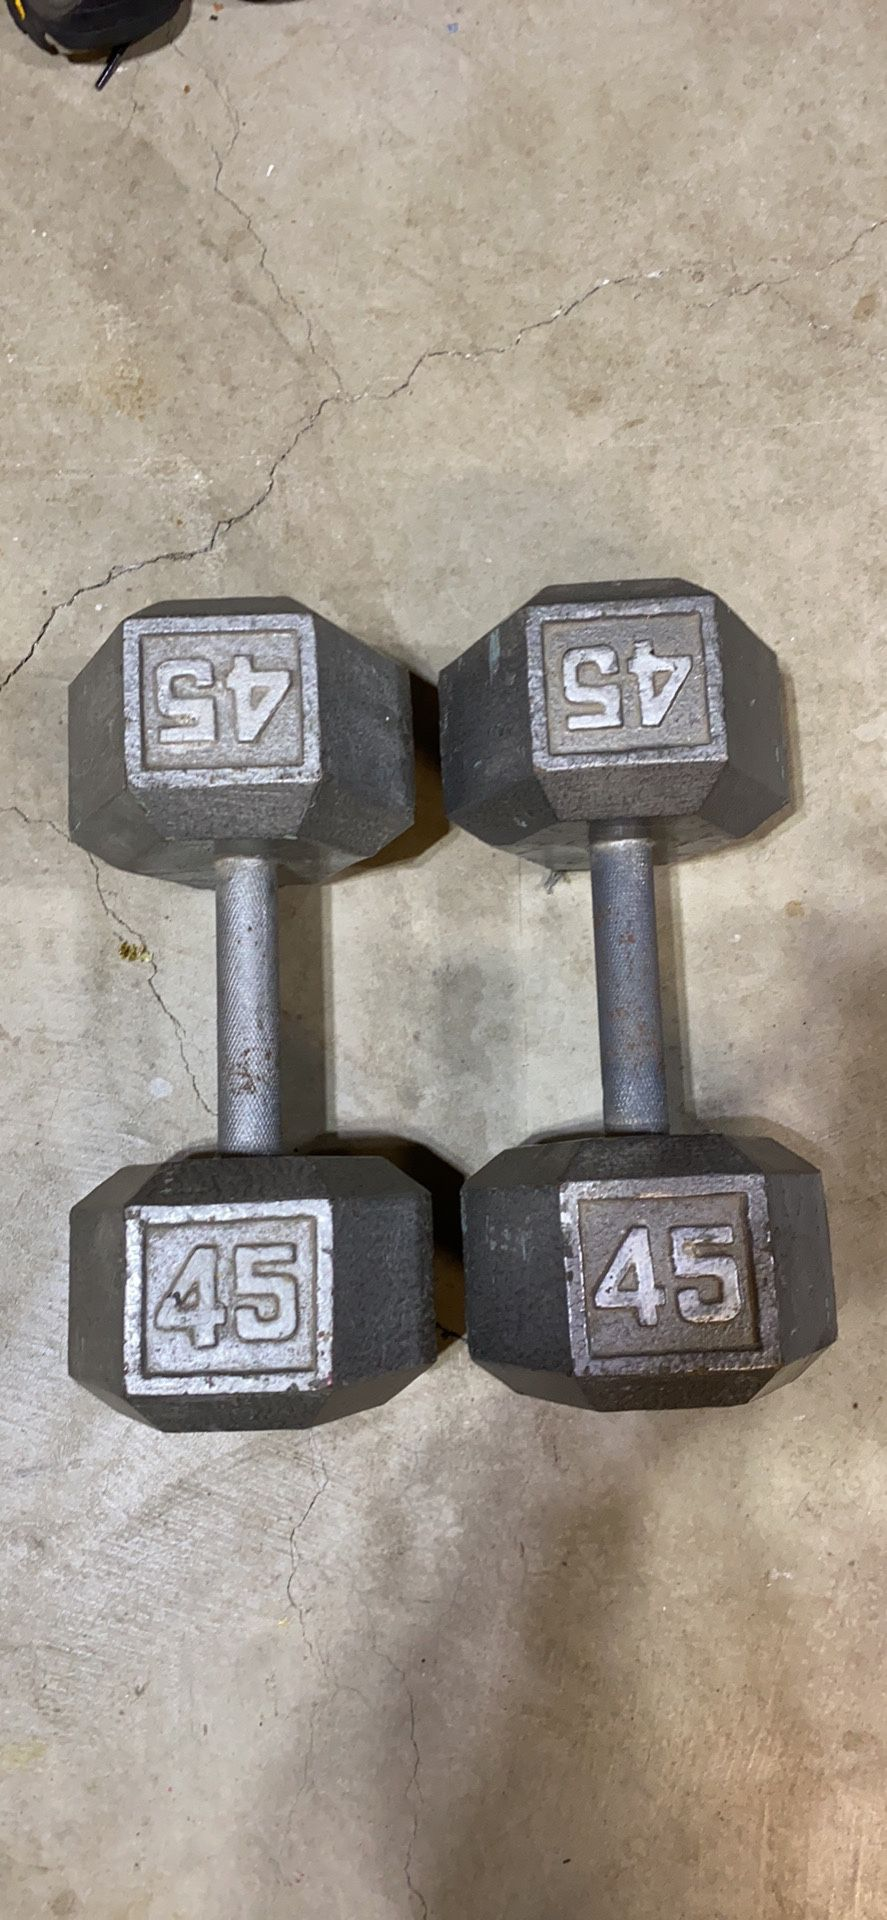 Dumbbells / Weights 45pds